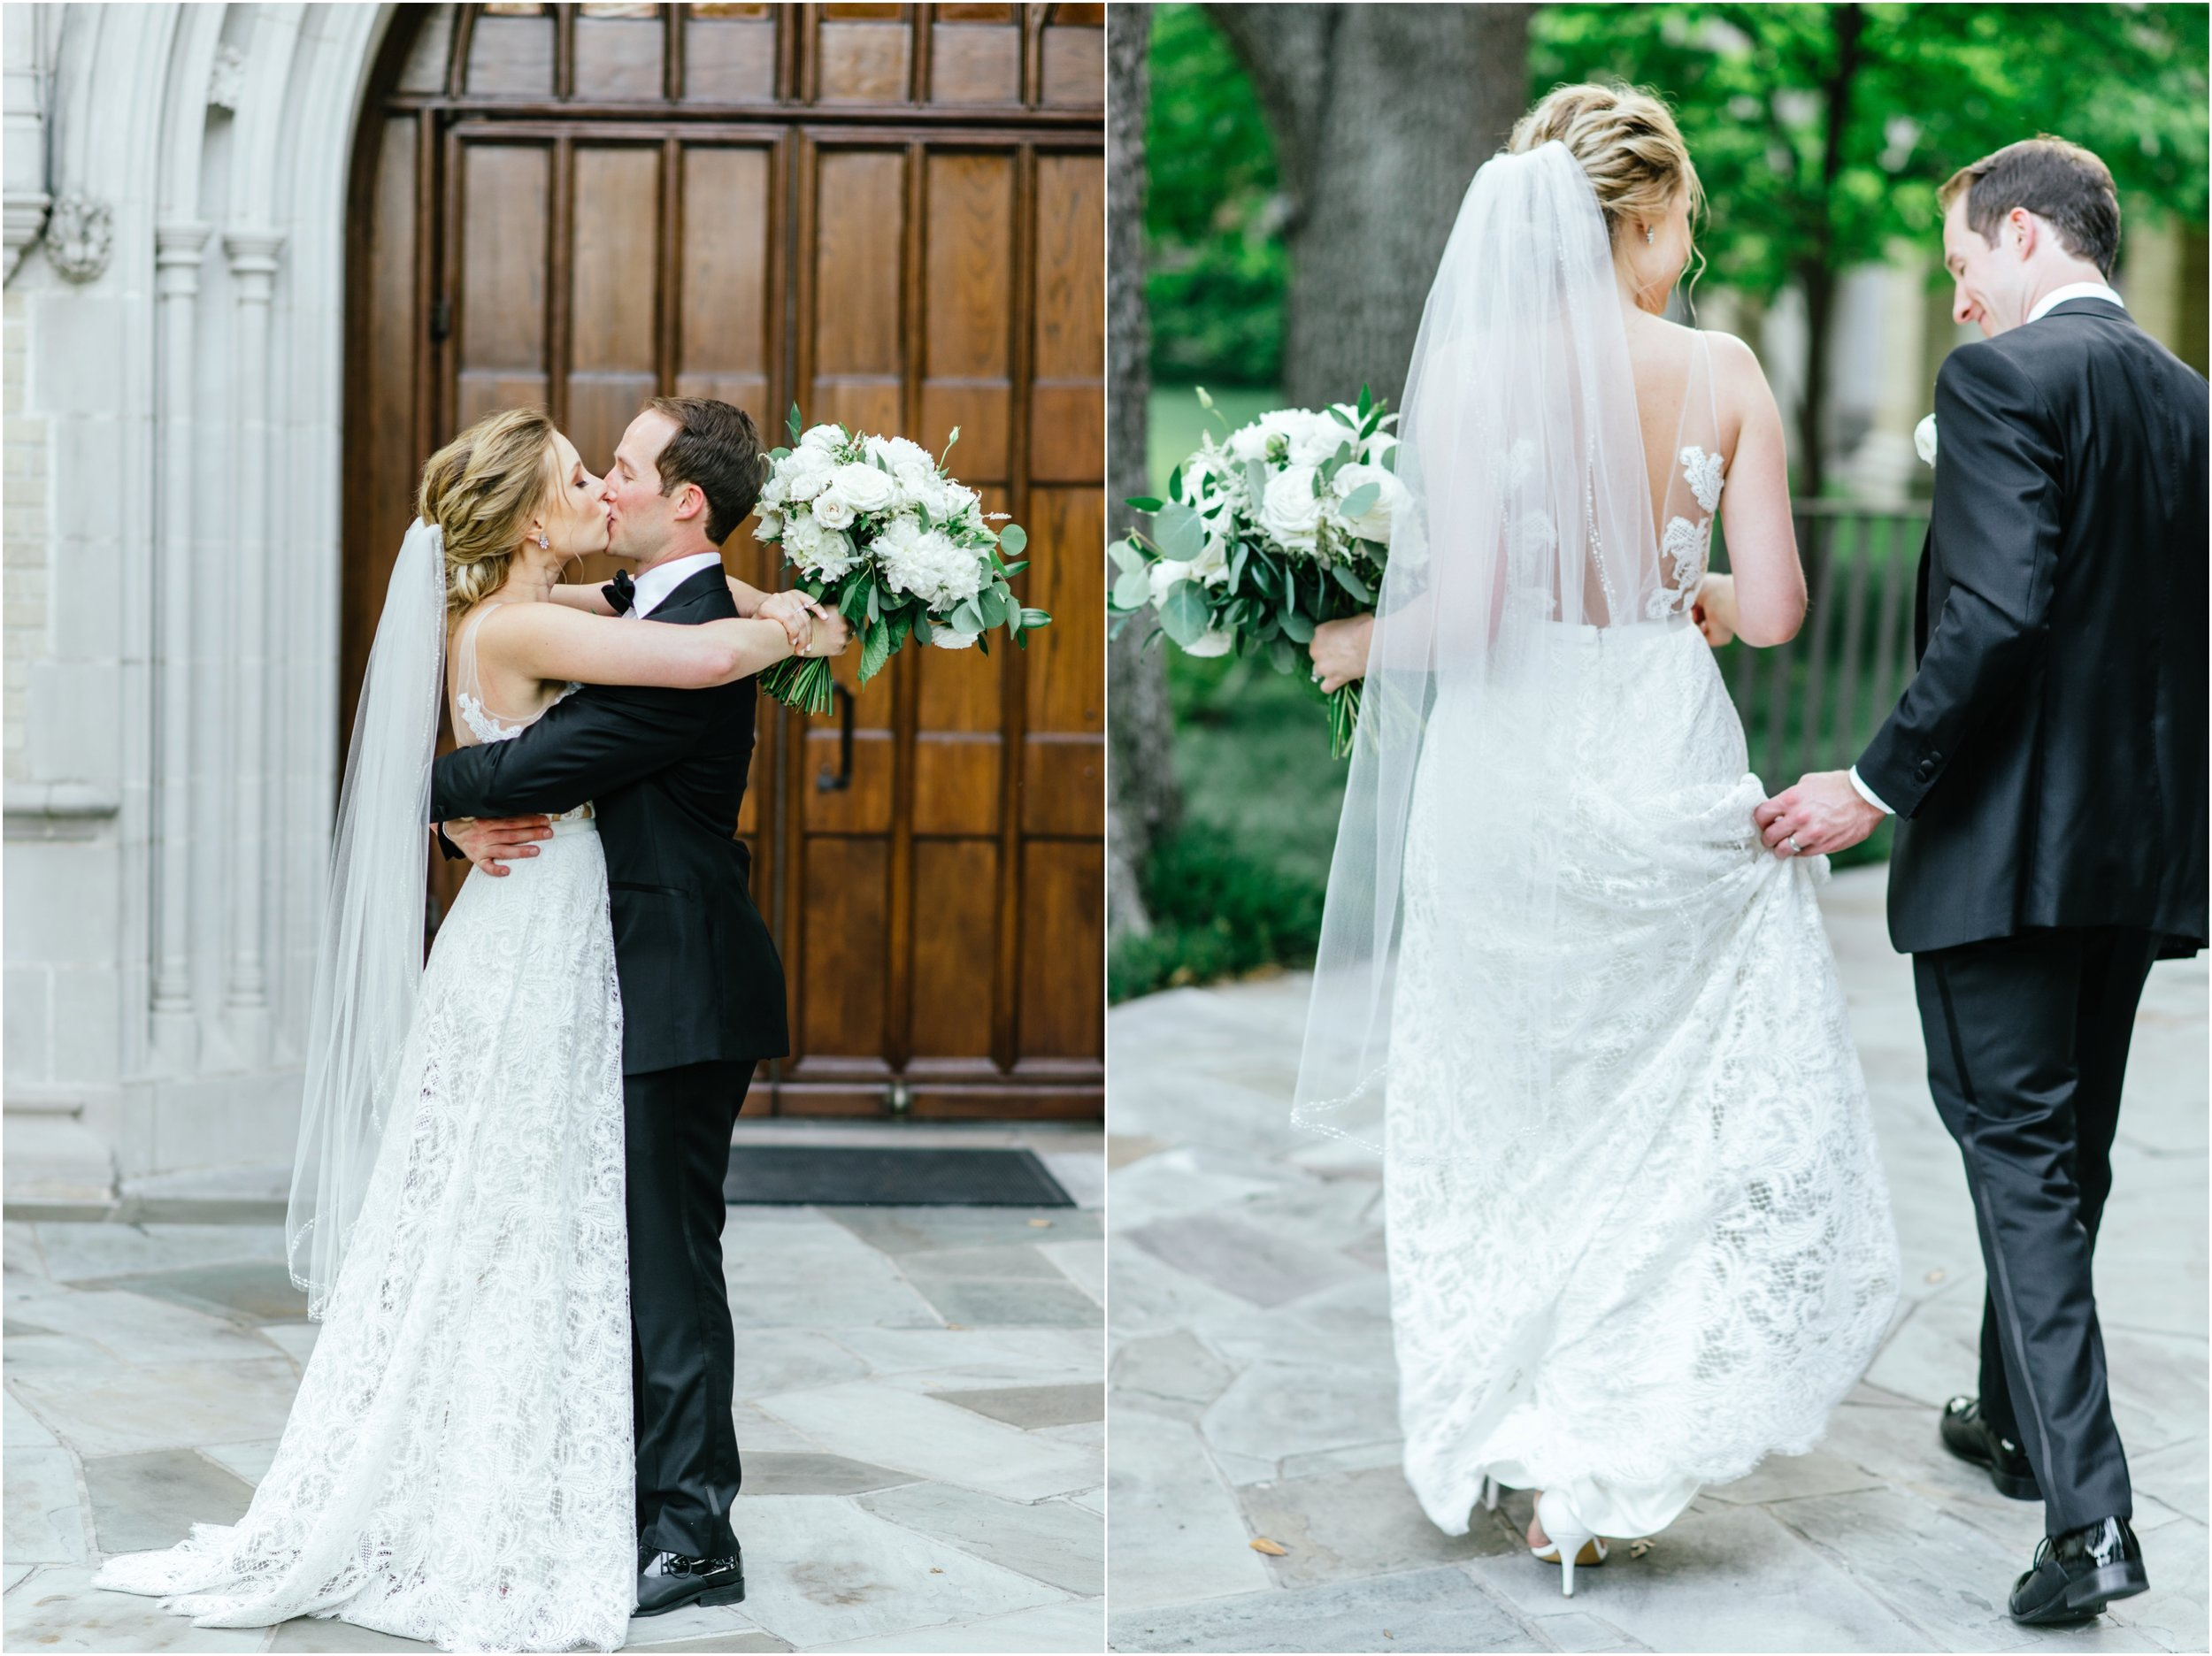 dallasweddingphotographer_fortworthweddingphotographer_texasweddingphotographer_mattandjulieweddings_Lauren+Andy_0070.jpg